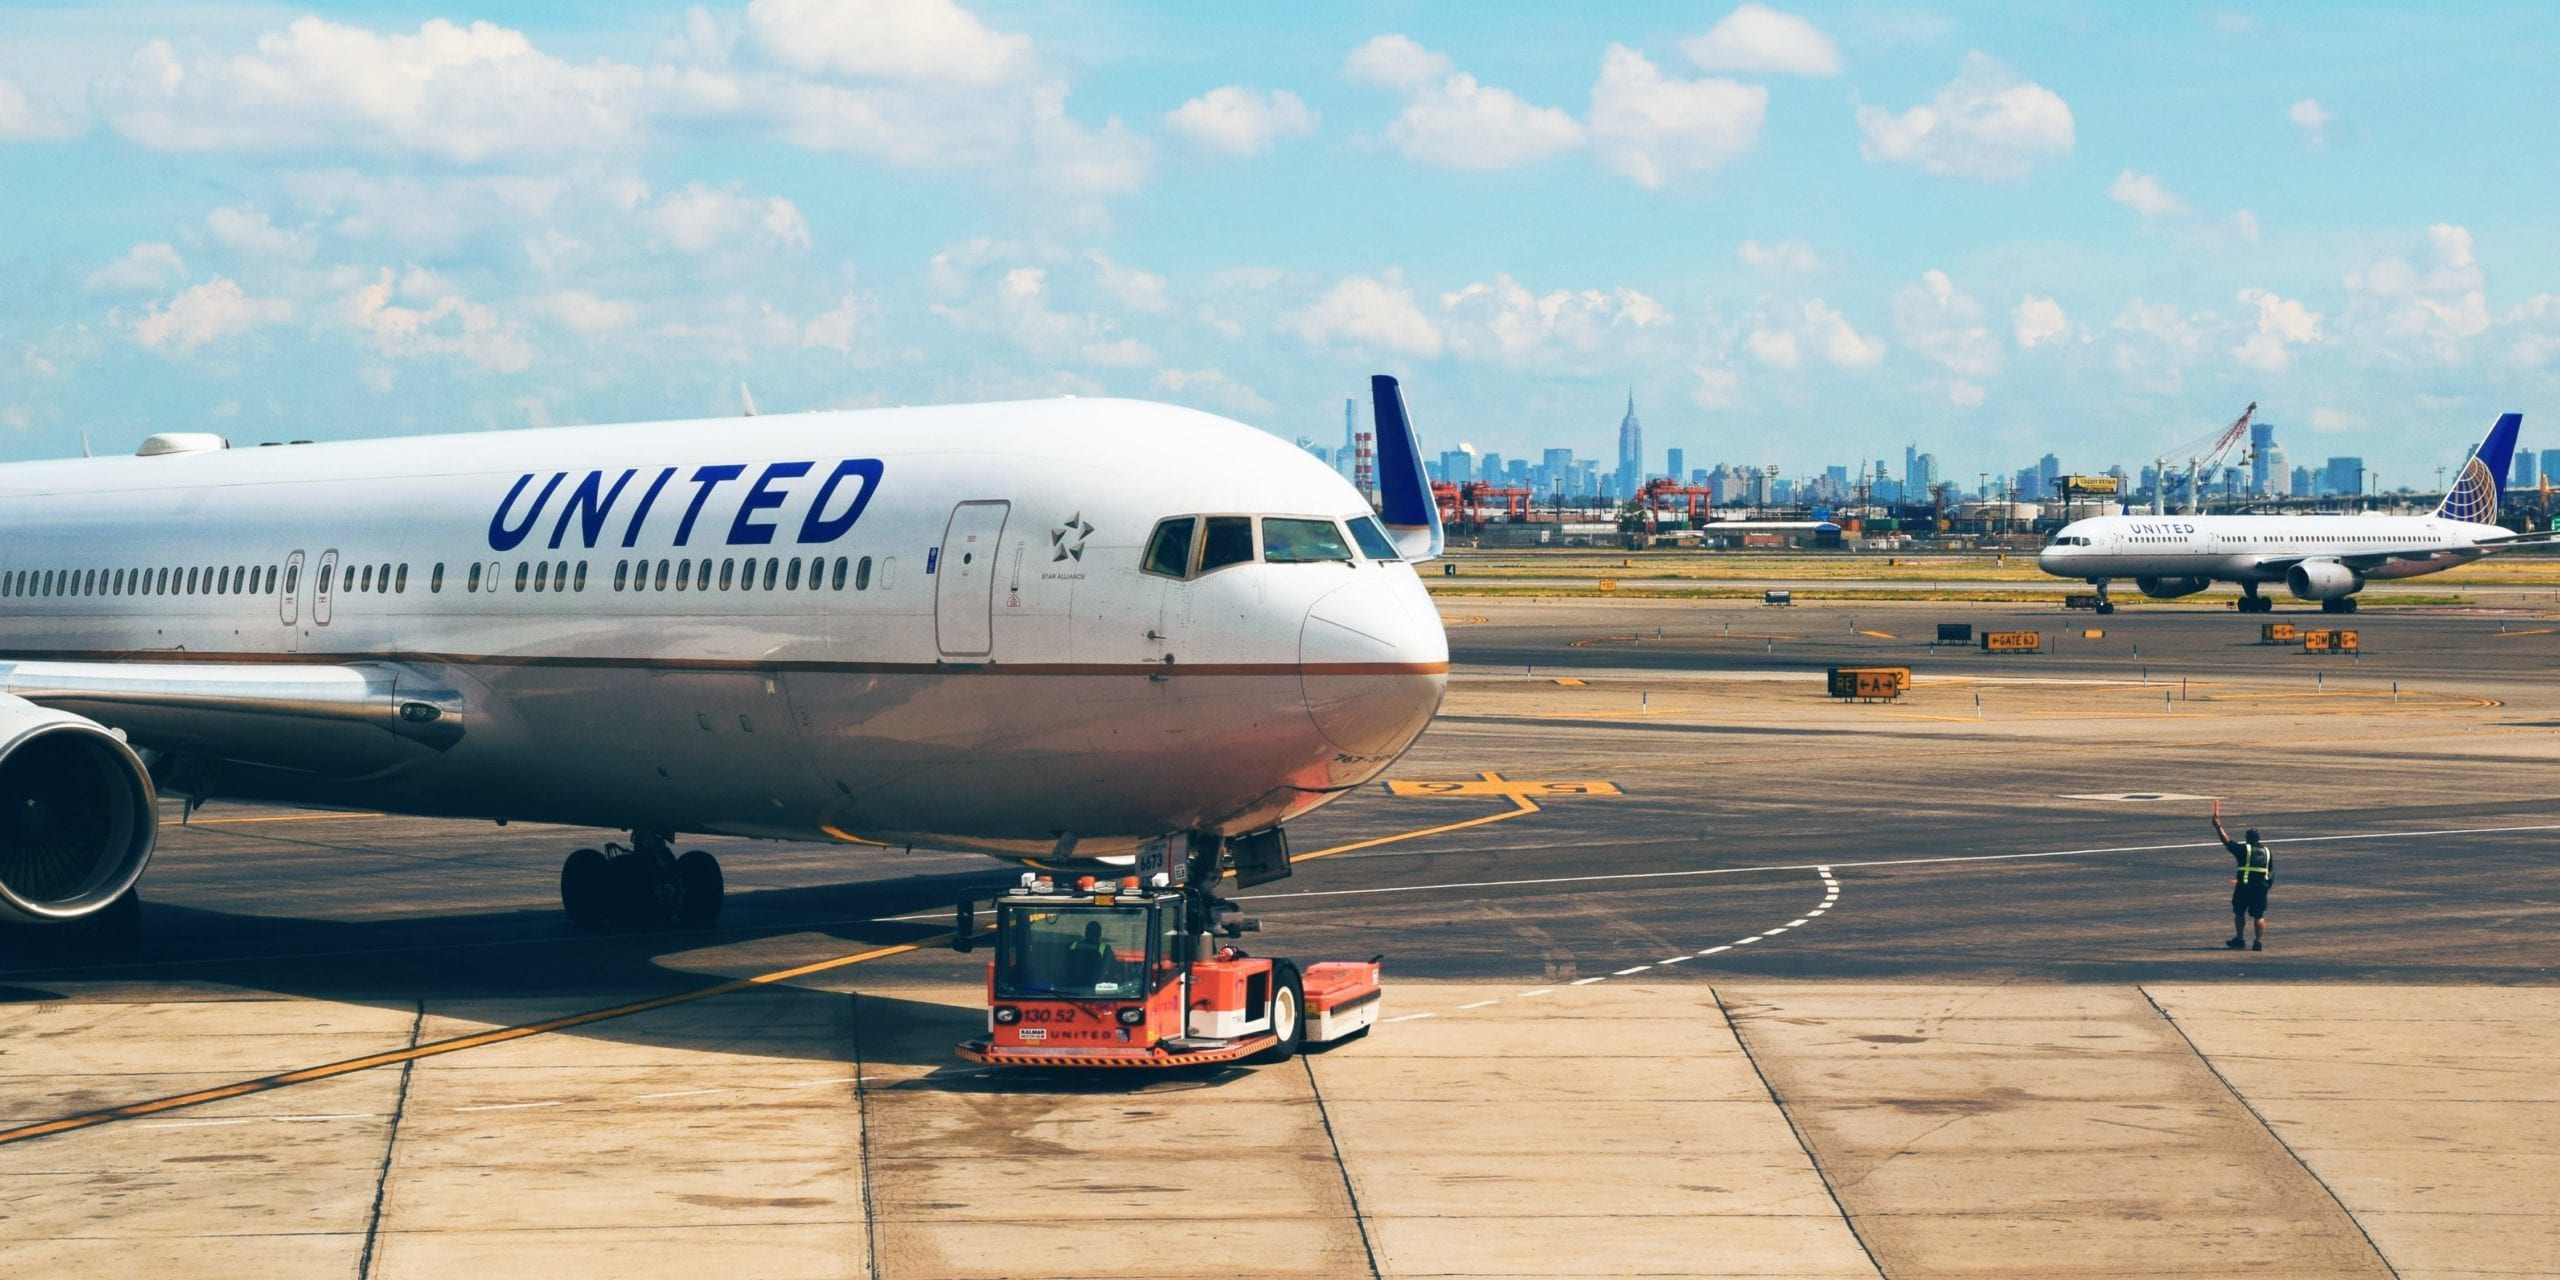 United Will Start Serving Food on 8+ Hour Flights to Hawaii